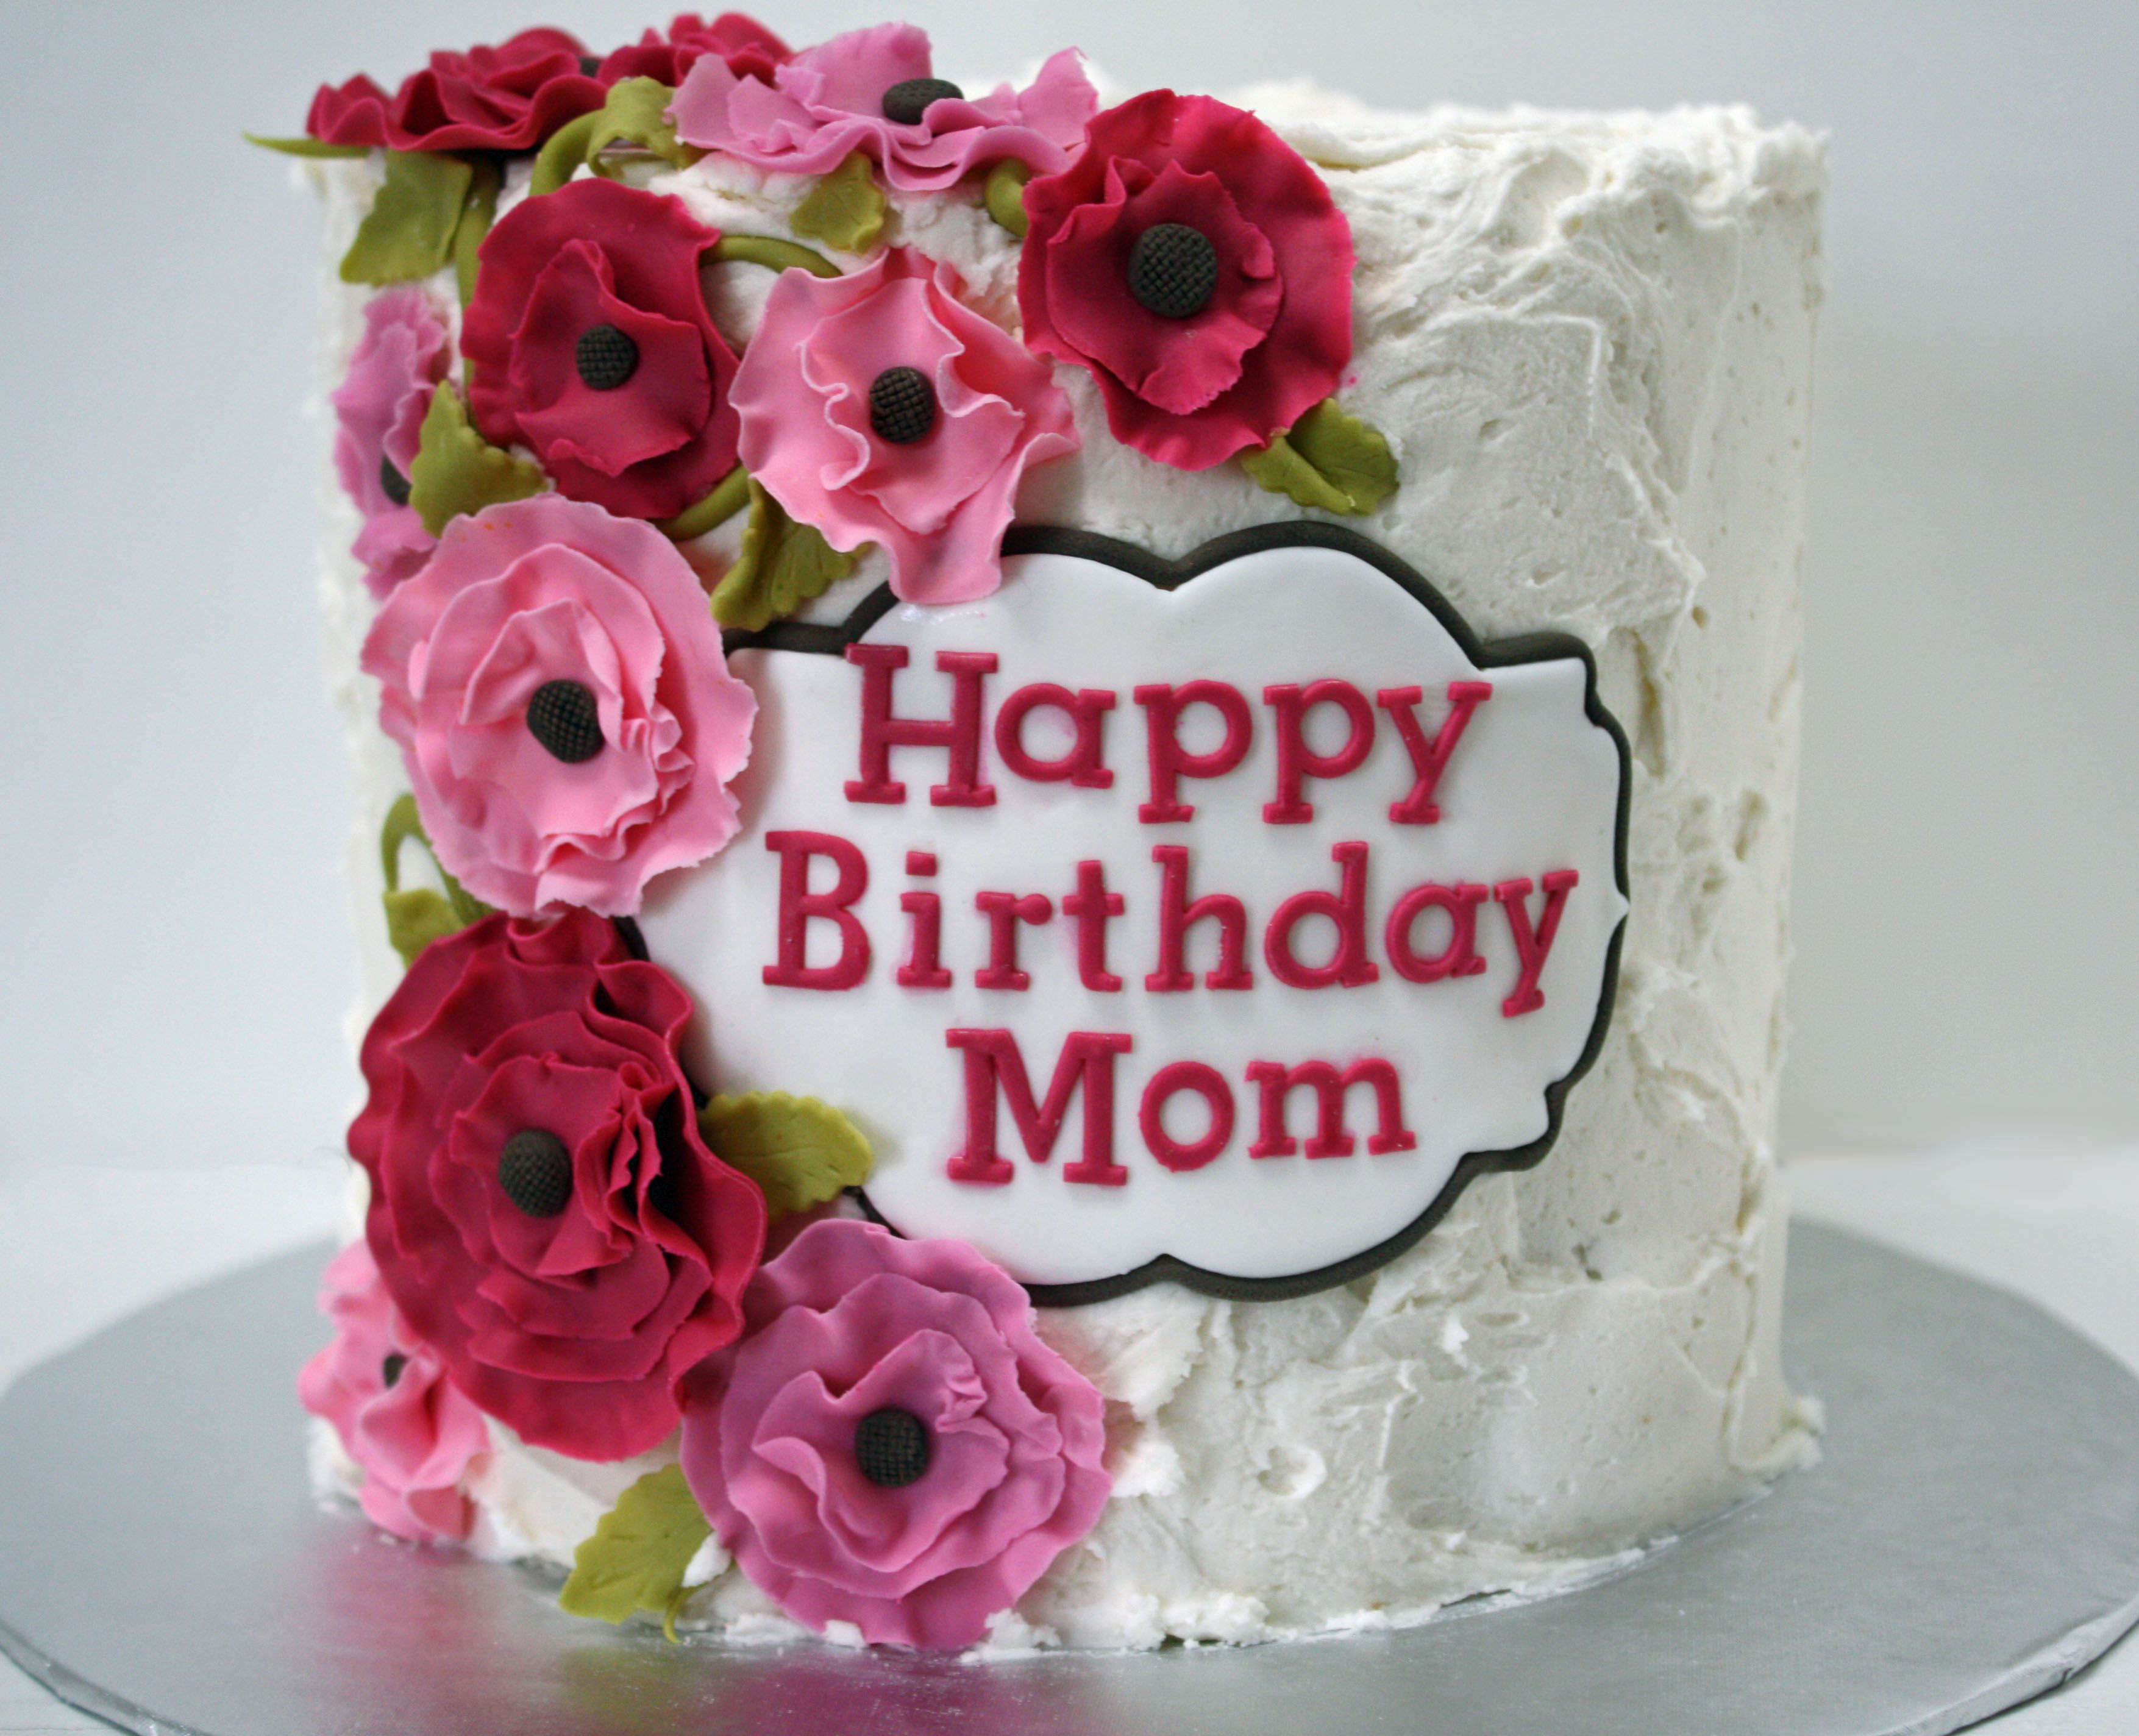 Best ideas about Happy Birthday Mom Cake . Save or Pin Happy Birthday Mom cake with pink flowers Frosted Bake Now.